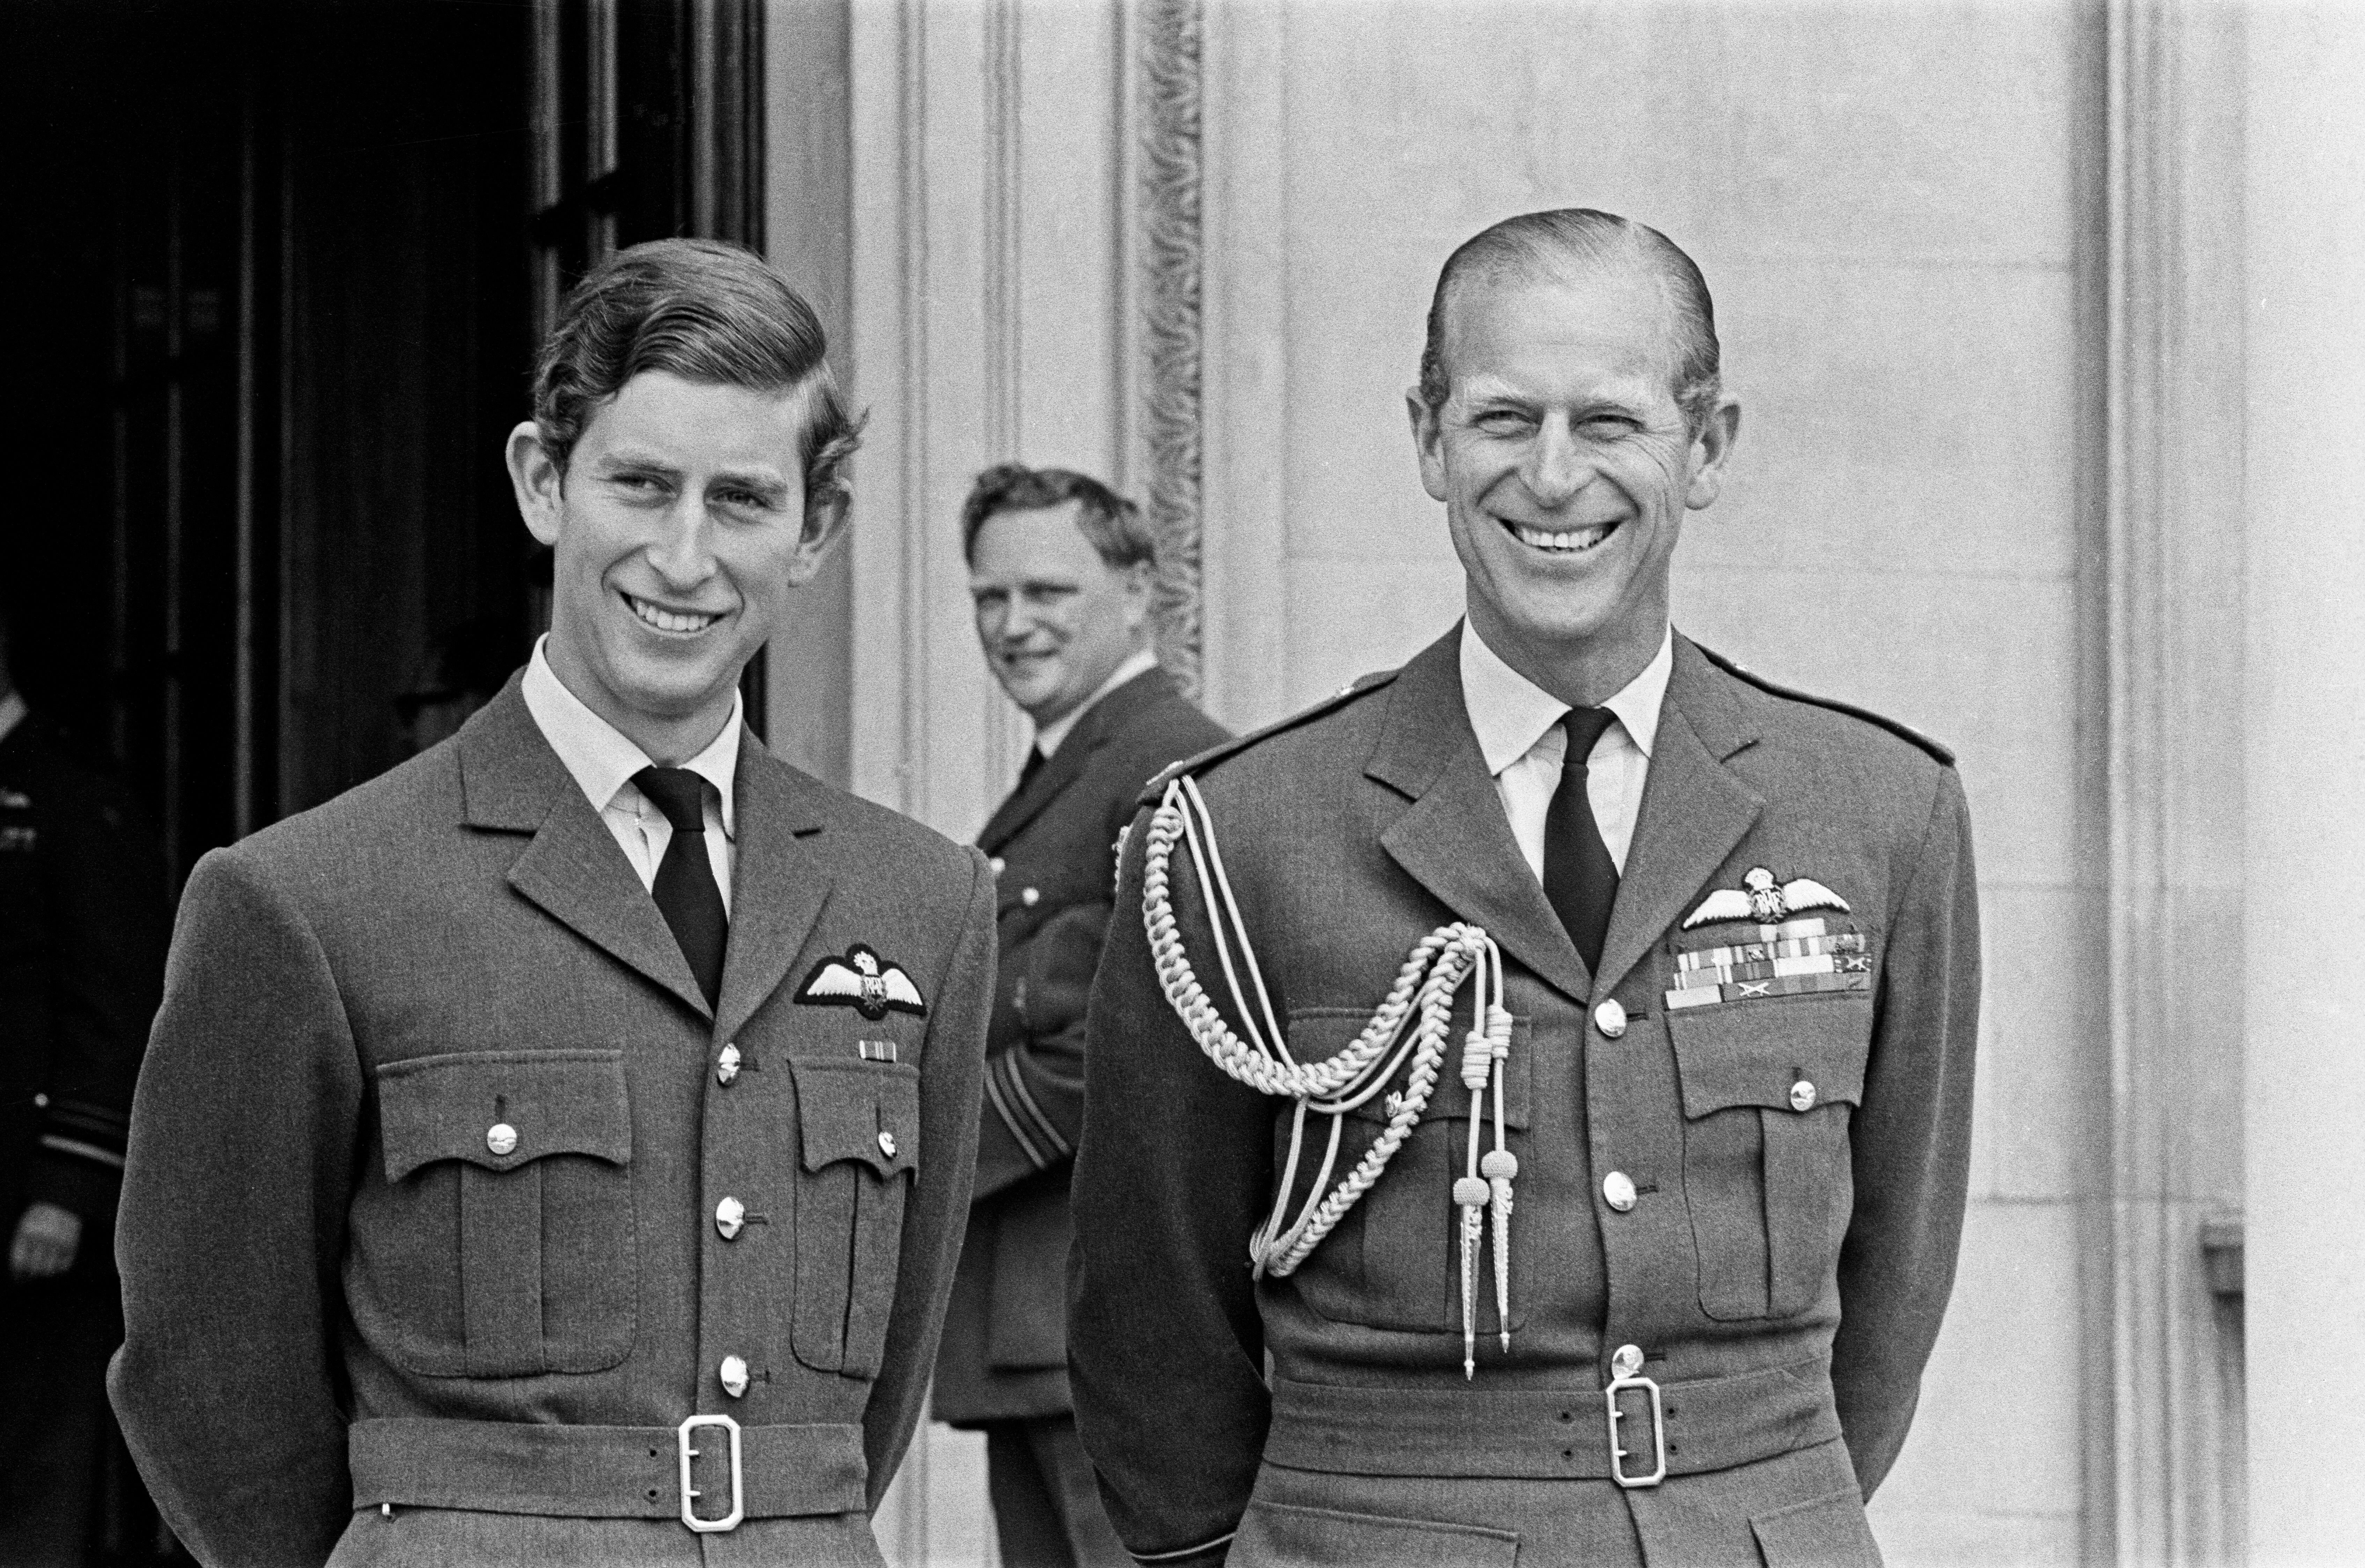 Prince Charles and his father Prince Philip, the Duke of Edinburgh, wearing a RAF uniform at the passing out parade at Cranwell in 1971 | Photo: mirrorpix/Mirrorpix/Mirrorpix via Getty Images